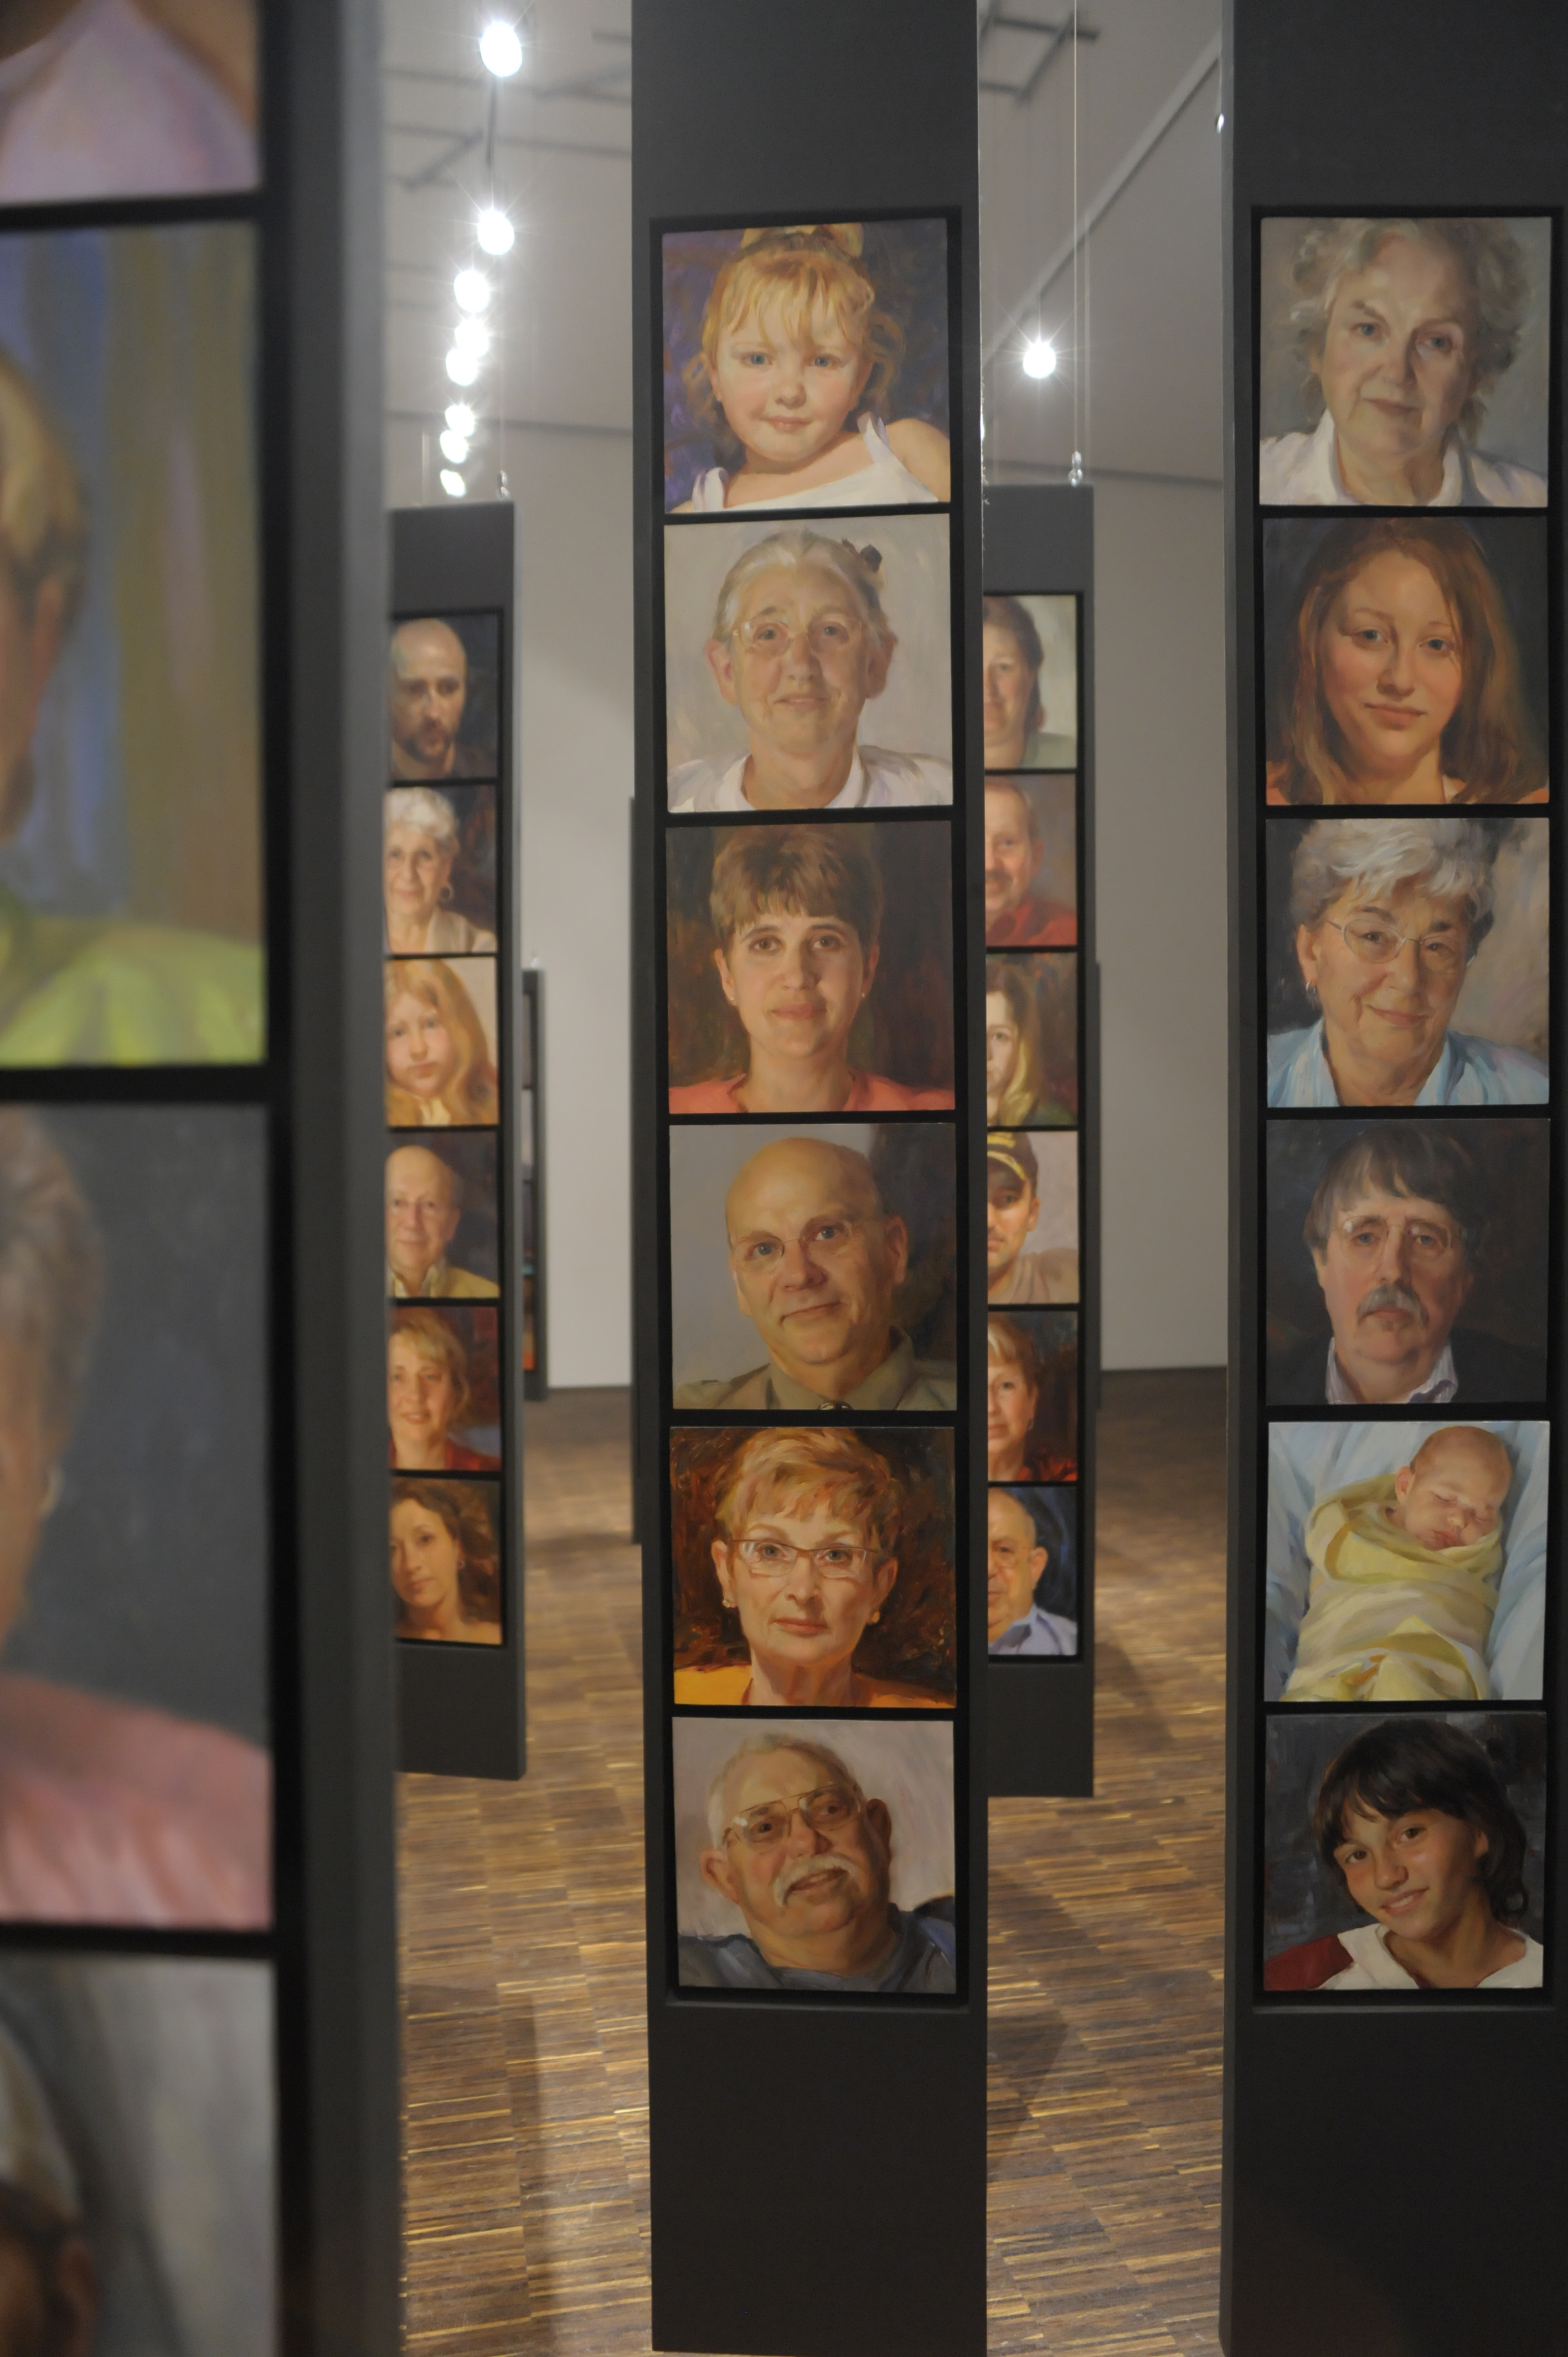 One side of the exhibit features Maquoketa residents' portraits...